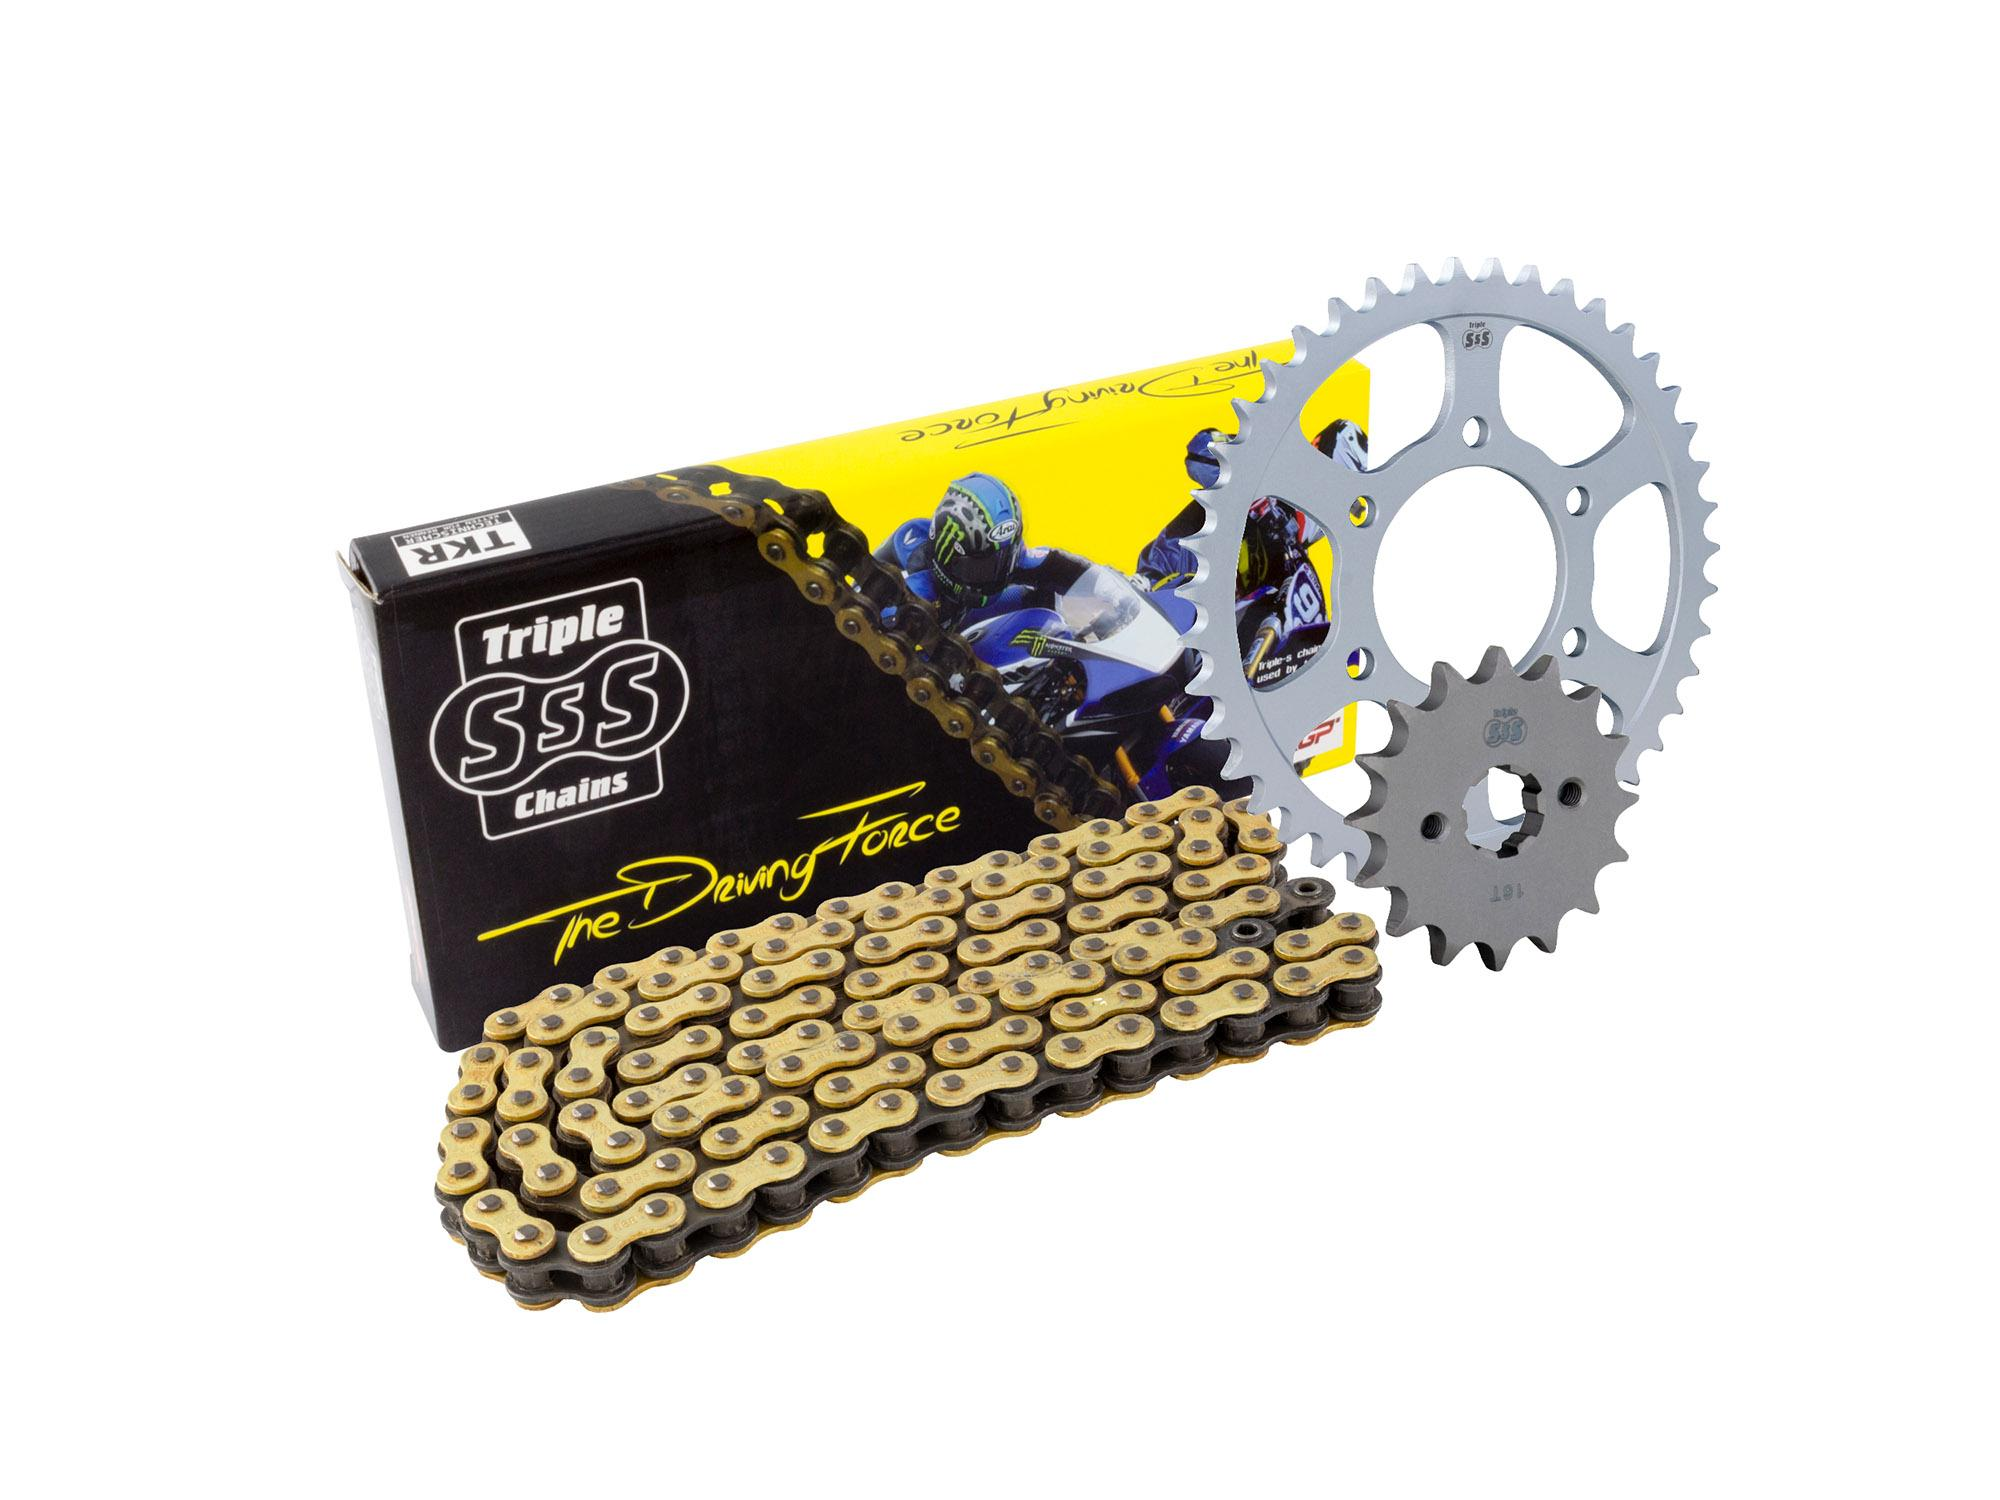 Triumph 600 Speed 03-05, 600 TT 00-03 Chain & Sprocket Kit: 14T Front, 42T Rear, HD O-Ring Gold Chain 525H 106 Link